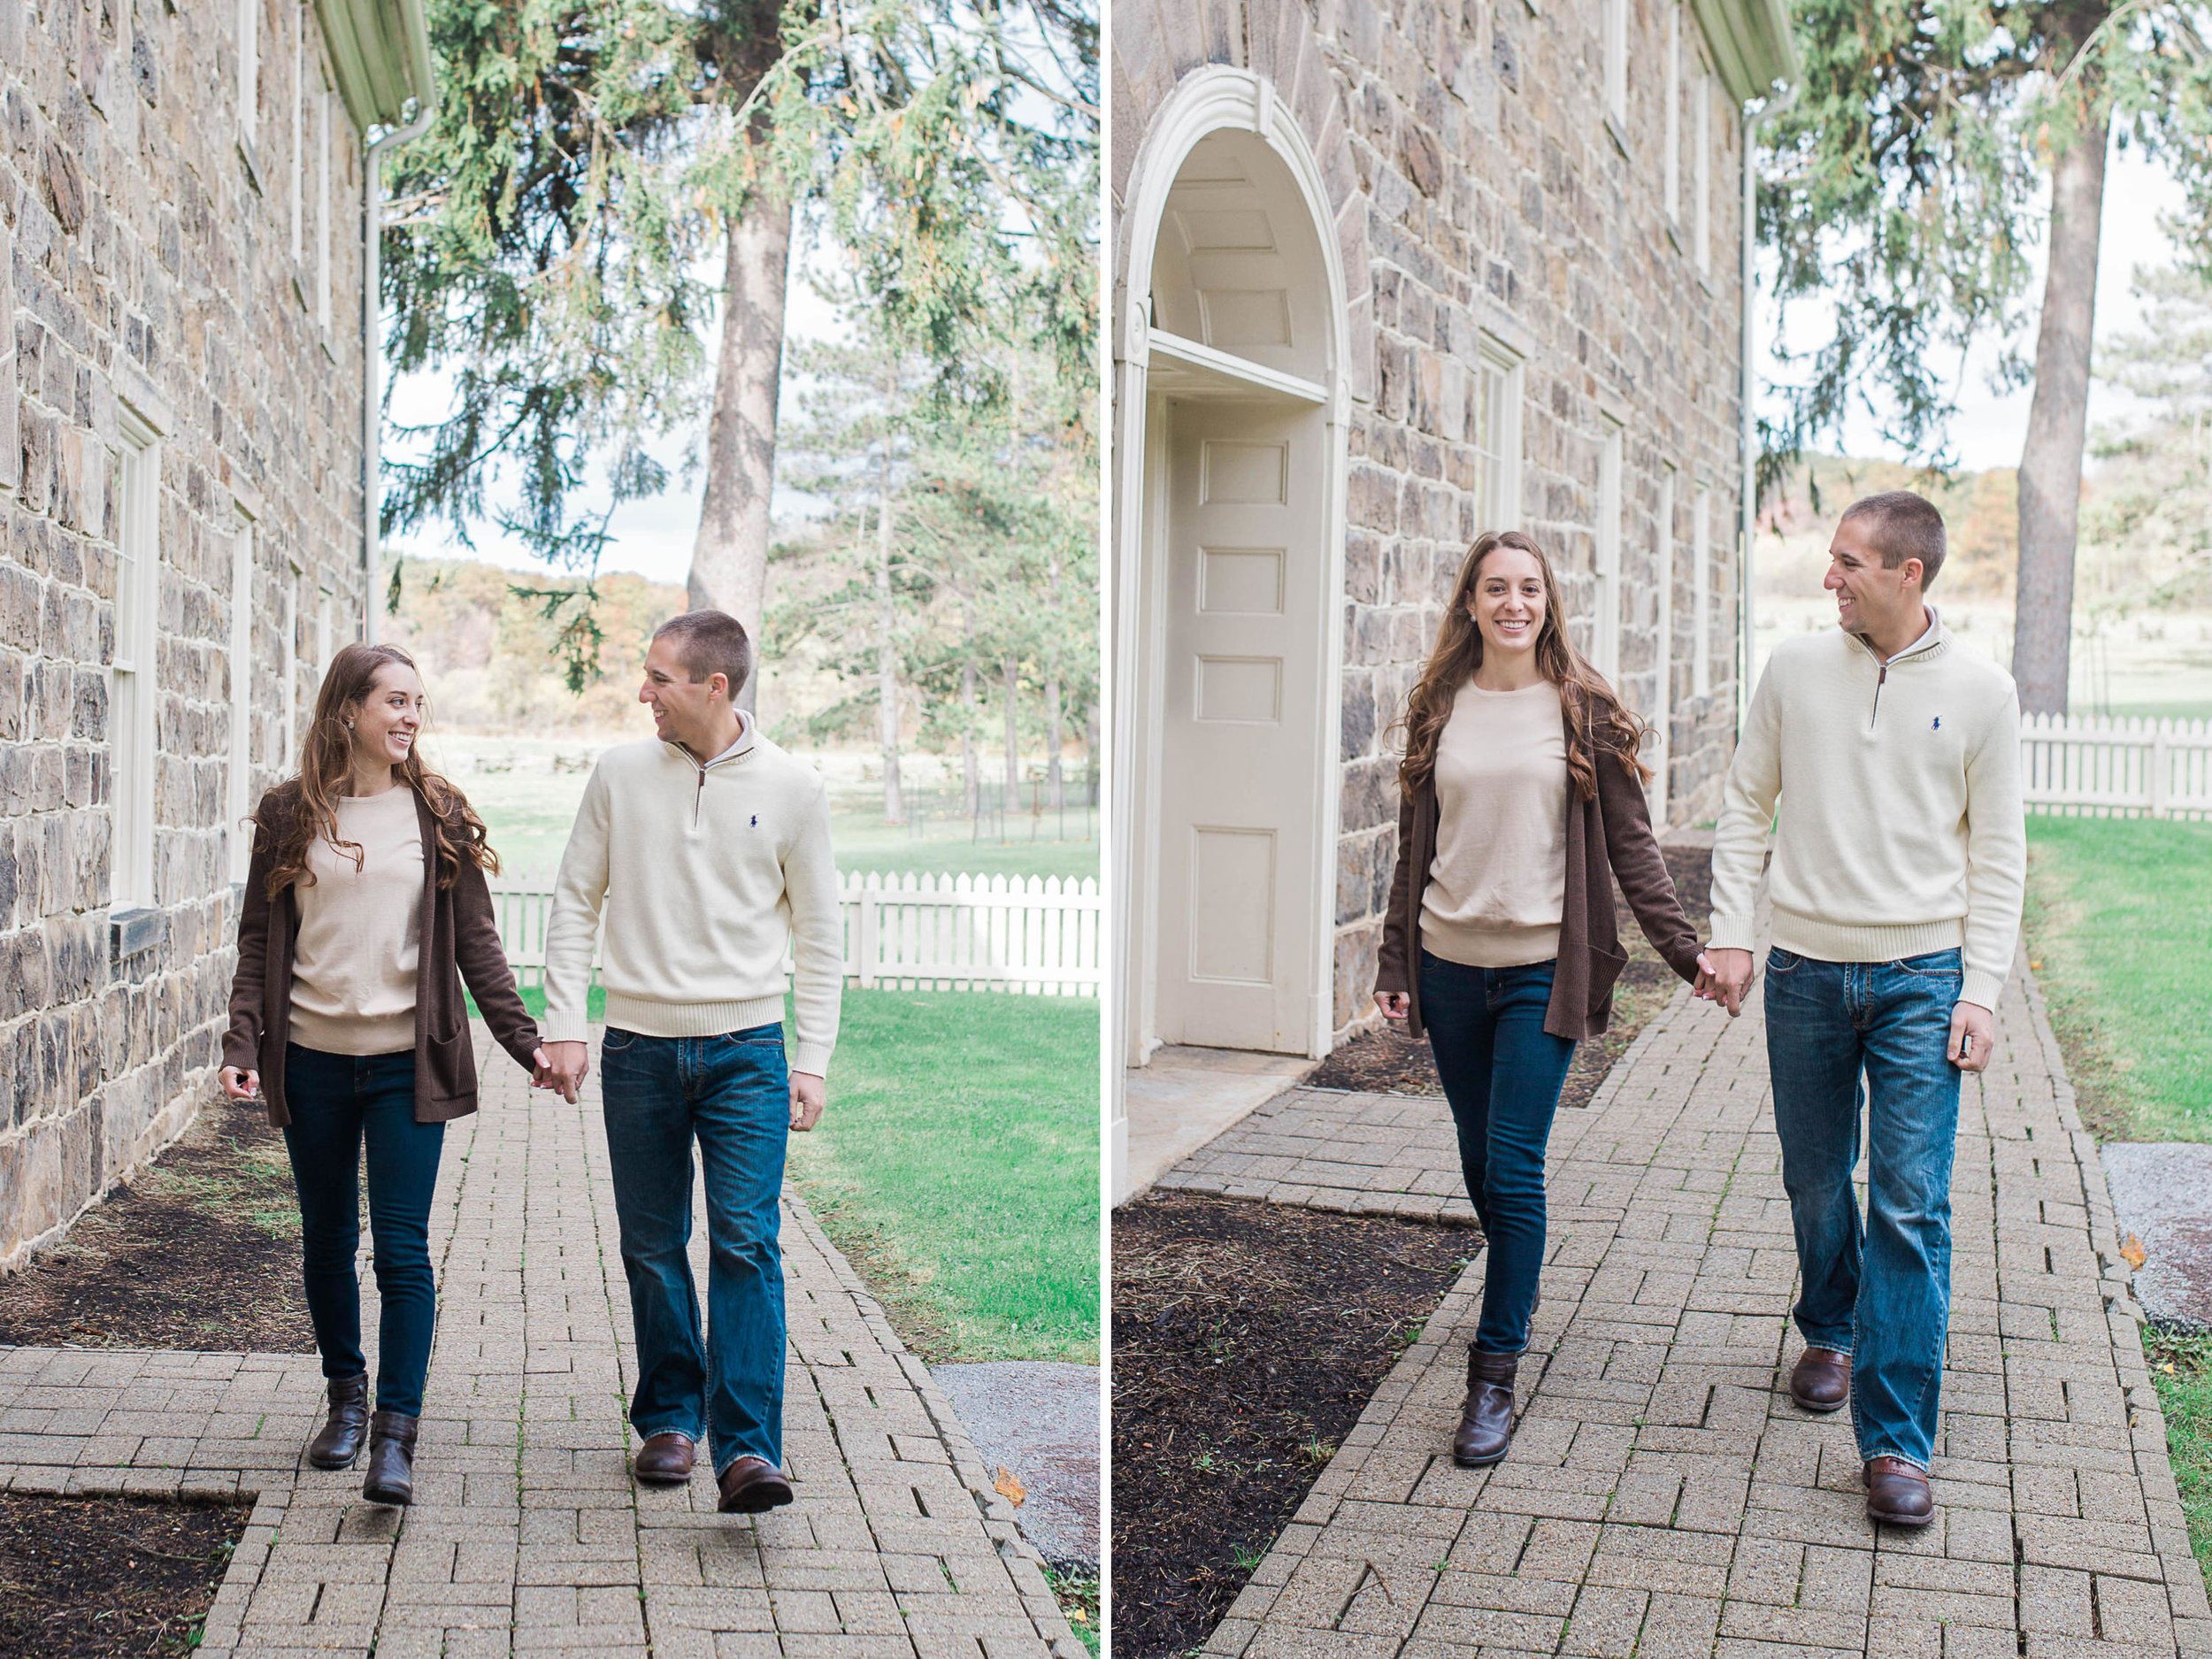 Altoona PA central pa state college Monroville wedding photographer engagement lemon house cresson pa_mariadylan (11).jpg